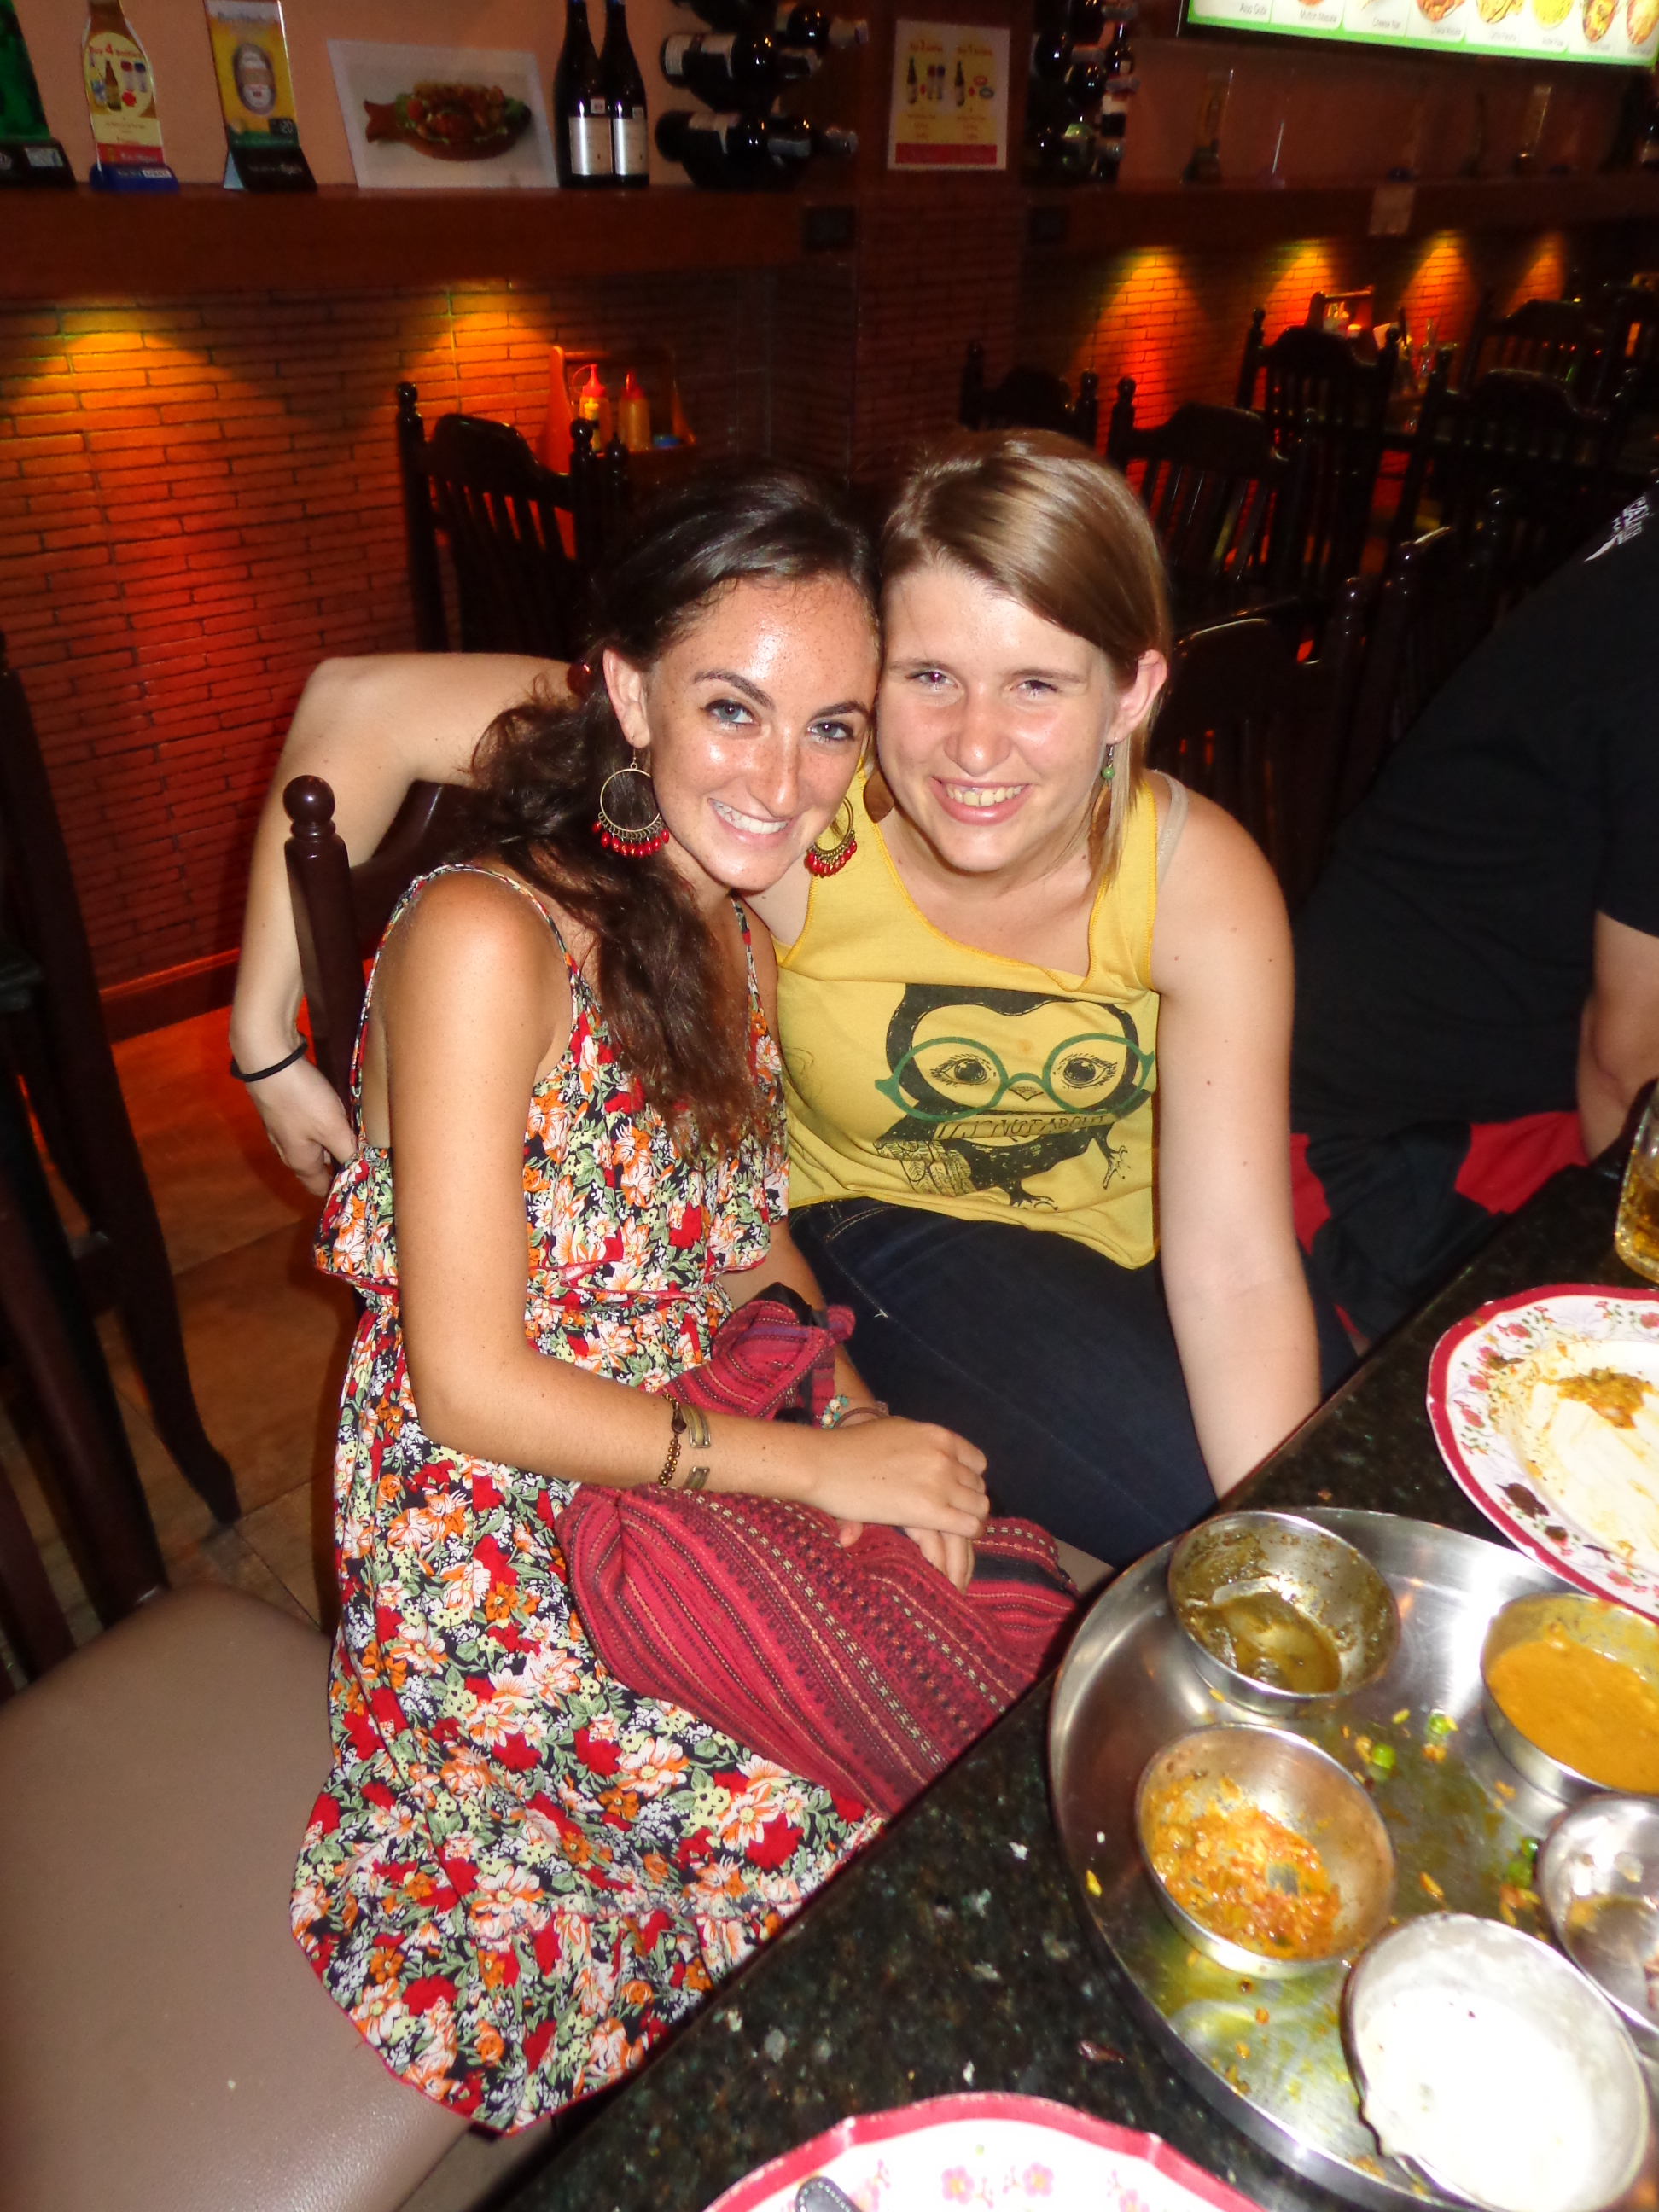 Saying hello AND goodbye to Clothilde at the end of my time in Thailand